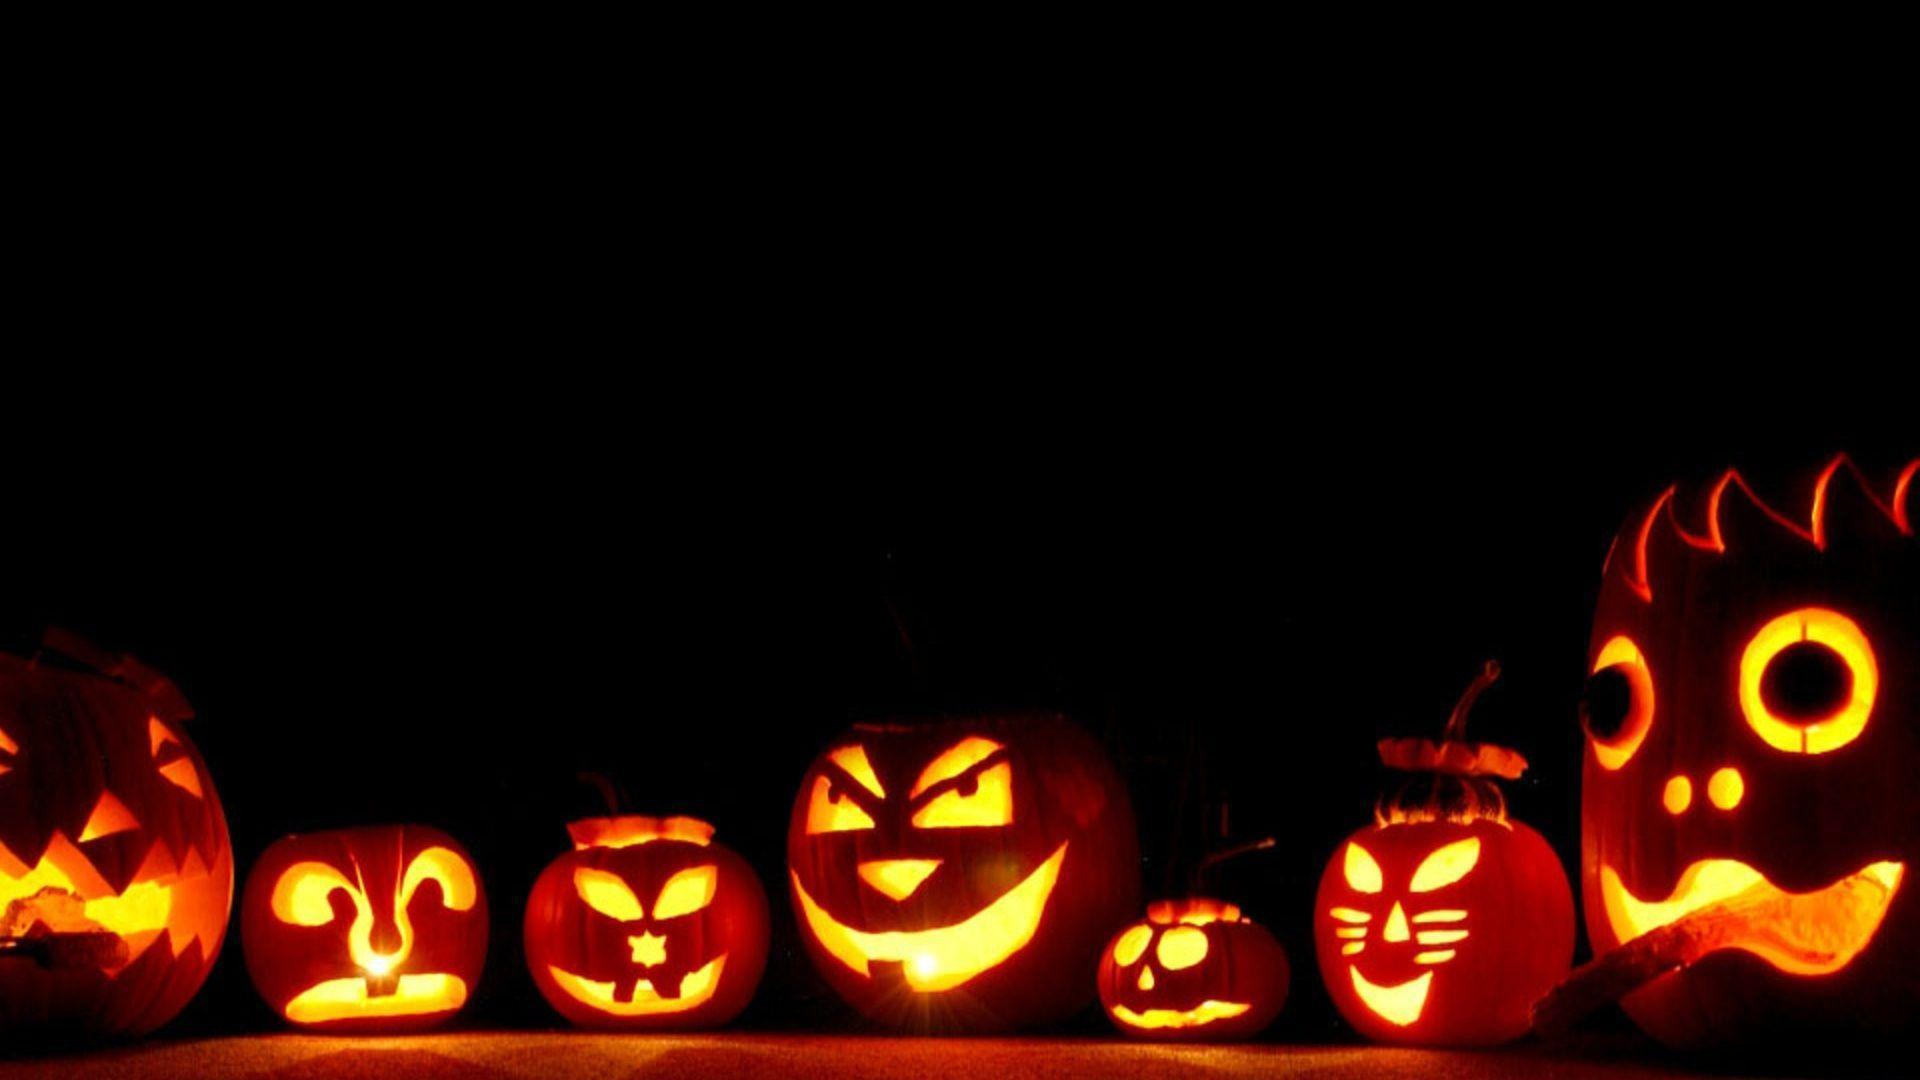 Free download Halloween Backgrounds | HD Wallpapers, Backgrounds ...